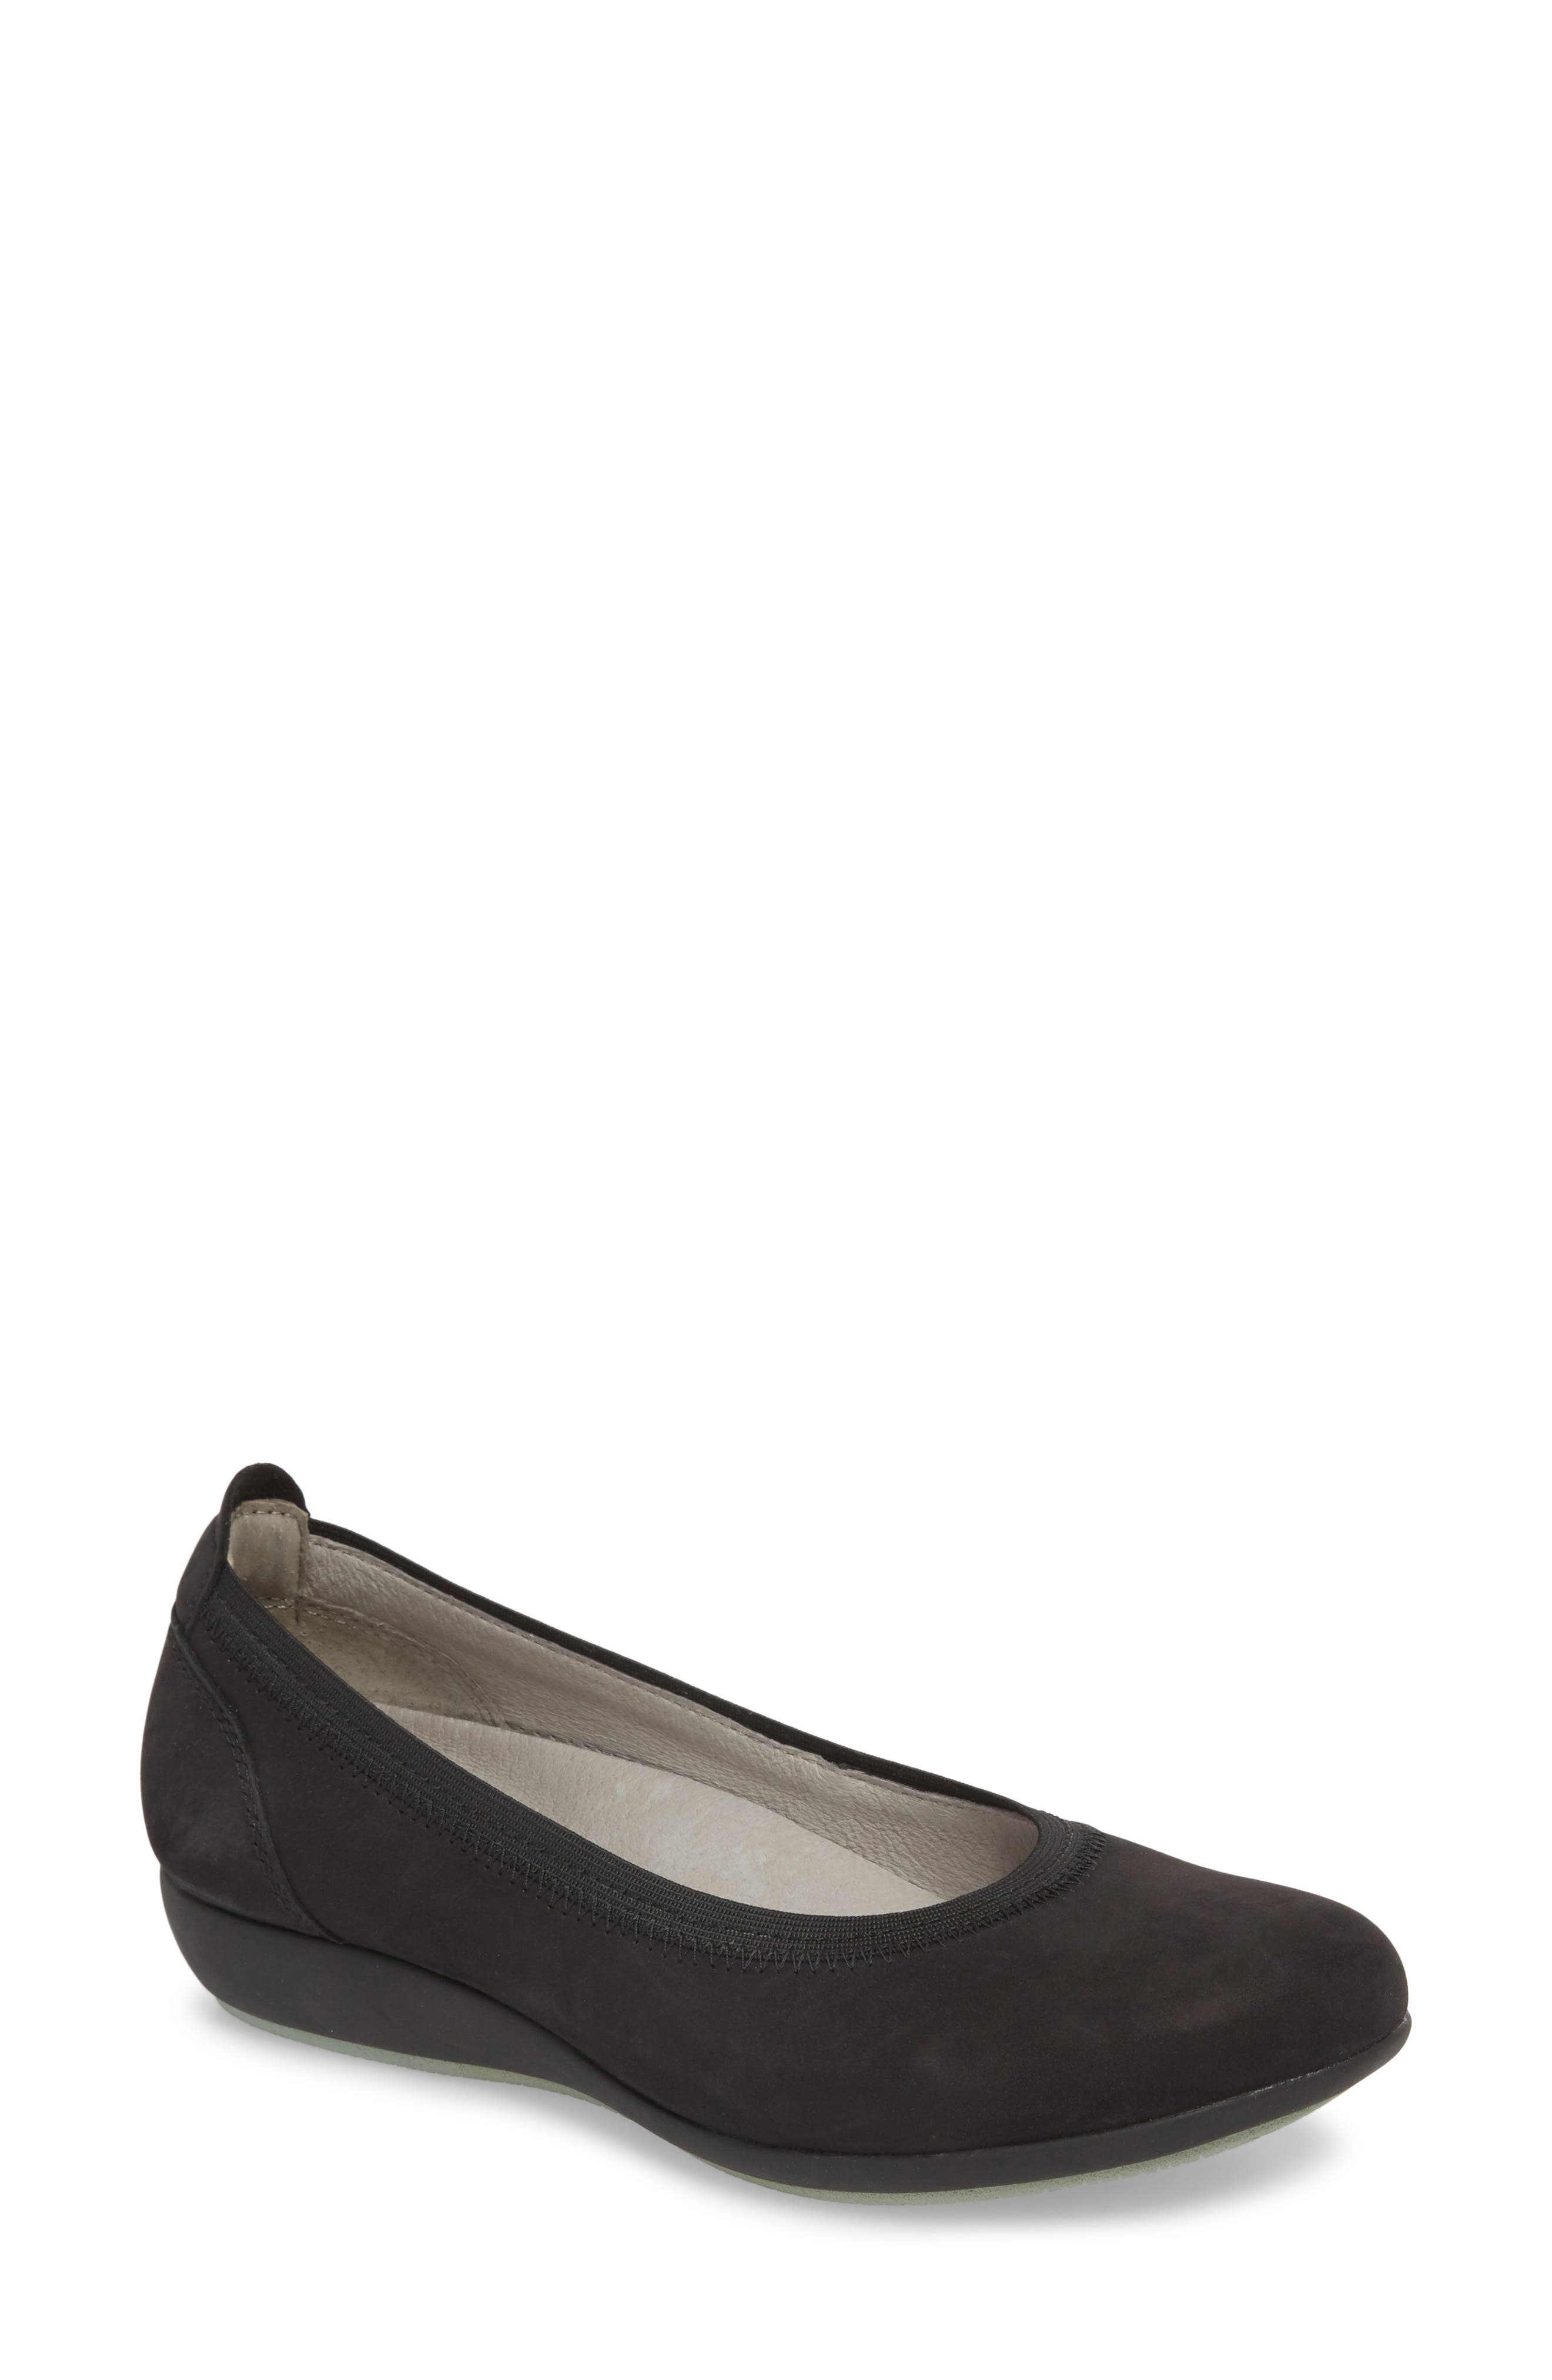 Kristen Ballet Flat,                             Main thumbnail 1, color,                             BLACK MILLED NUBUCK